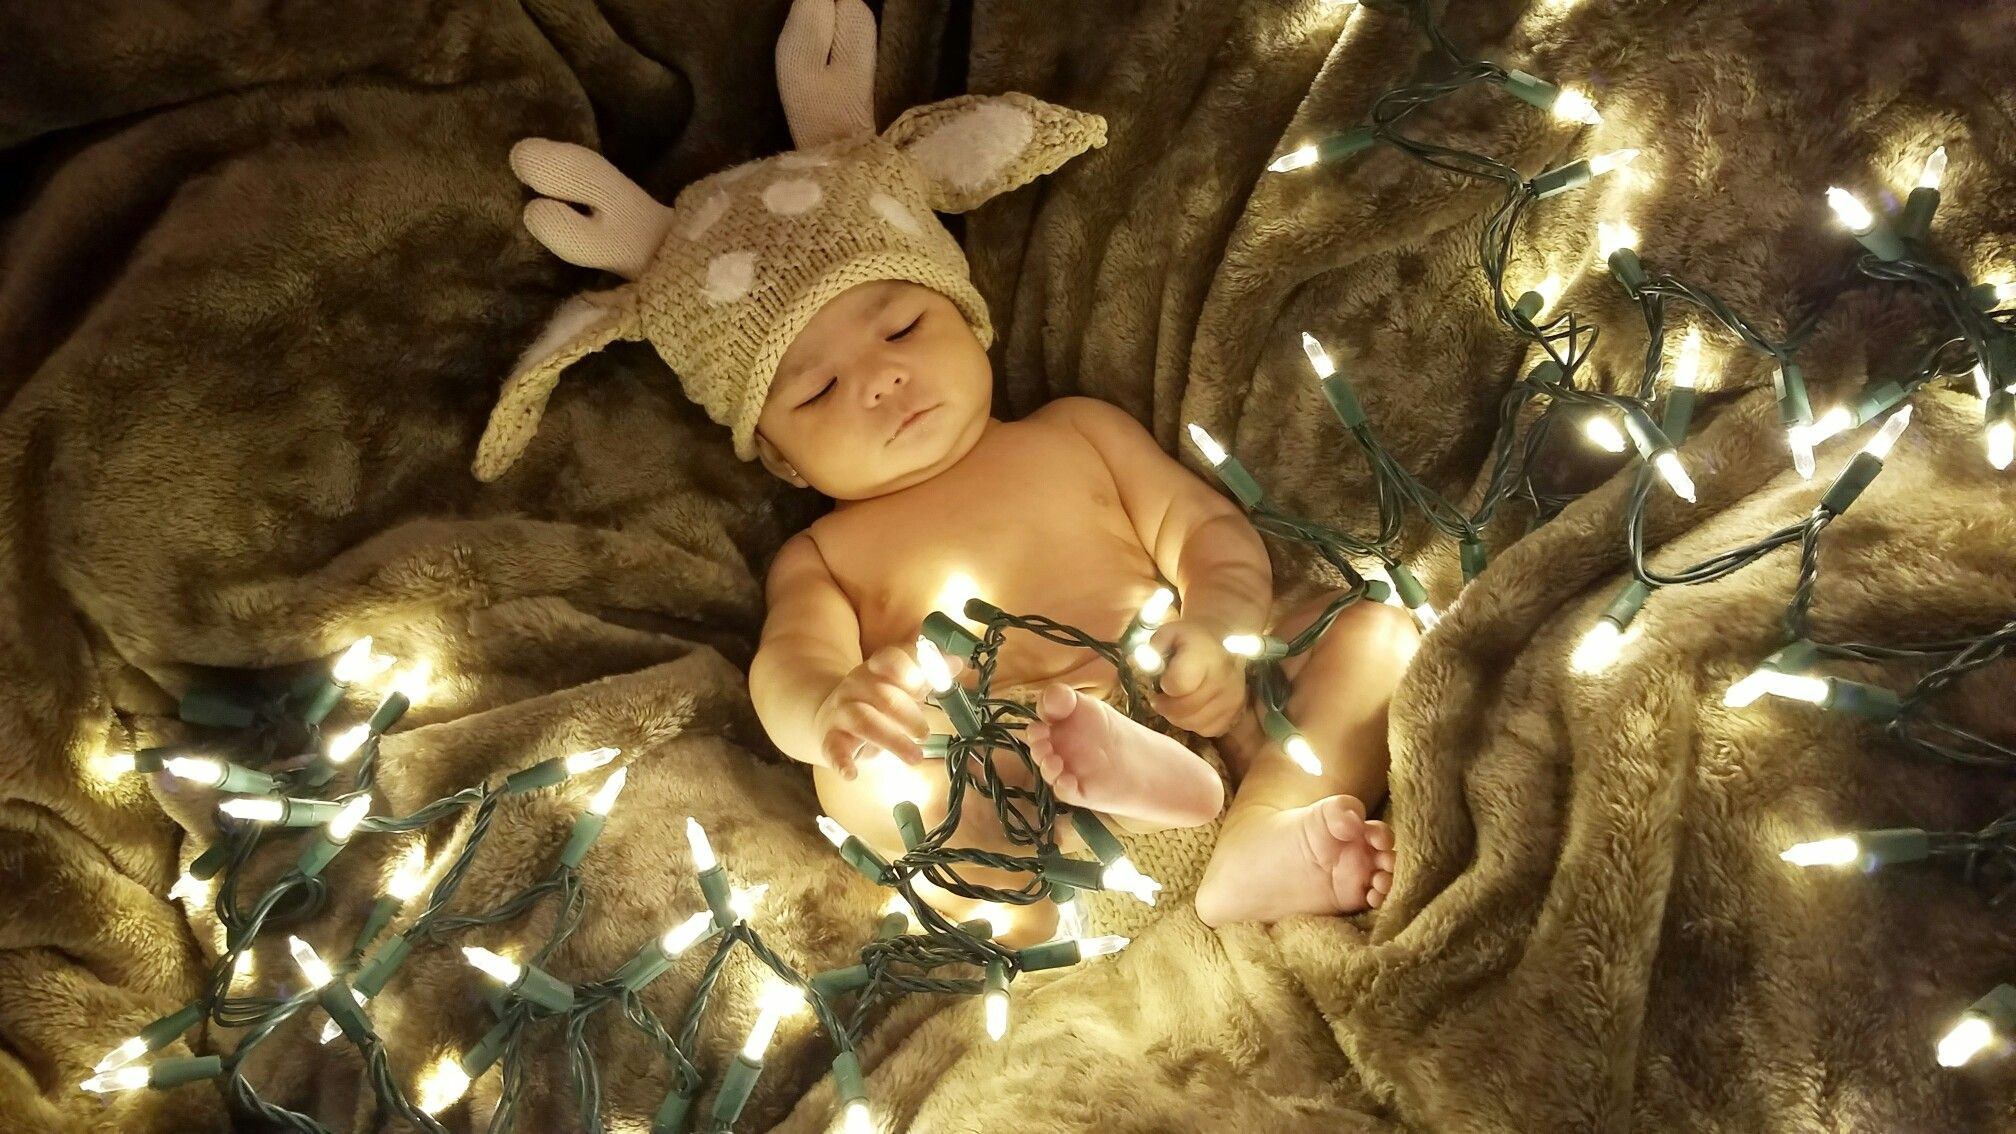 Do it yourself baby christmas pictures all you need is a blanket do it yourself baby christmas pictures all you need is a blanket on some pillows solutioingenieria Choice Image